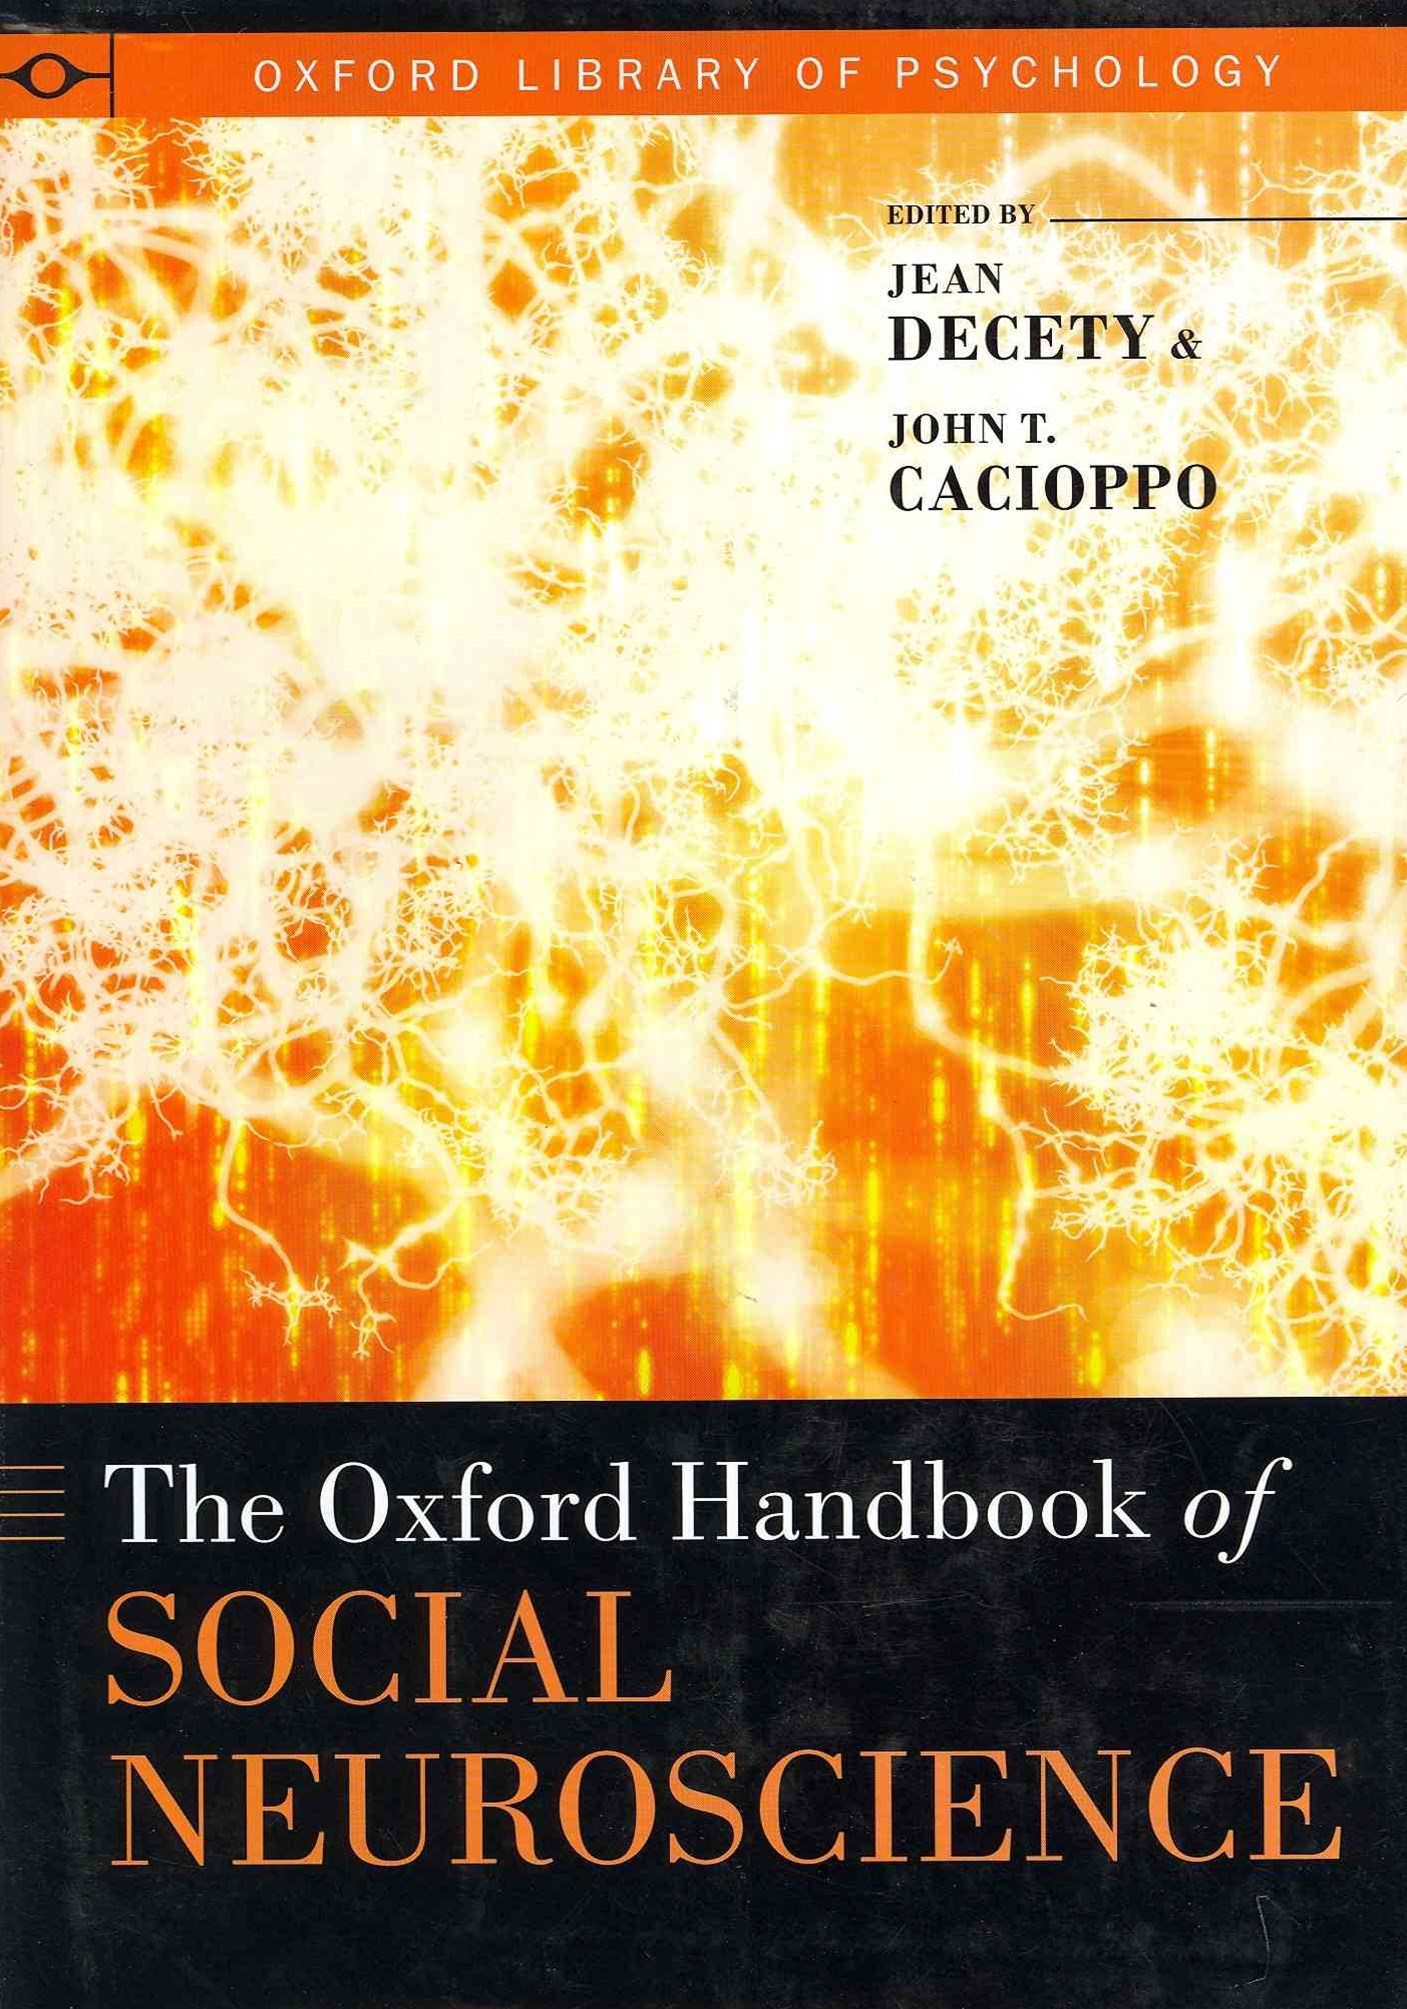 The Oxford Handbook of Social Neuroscience